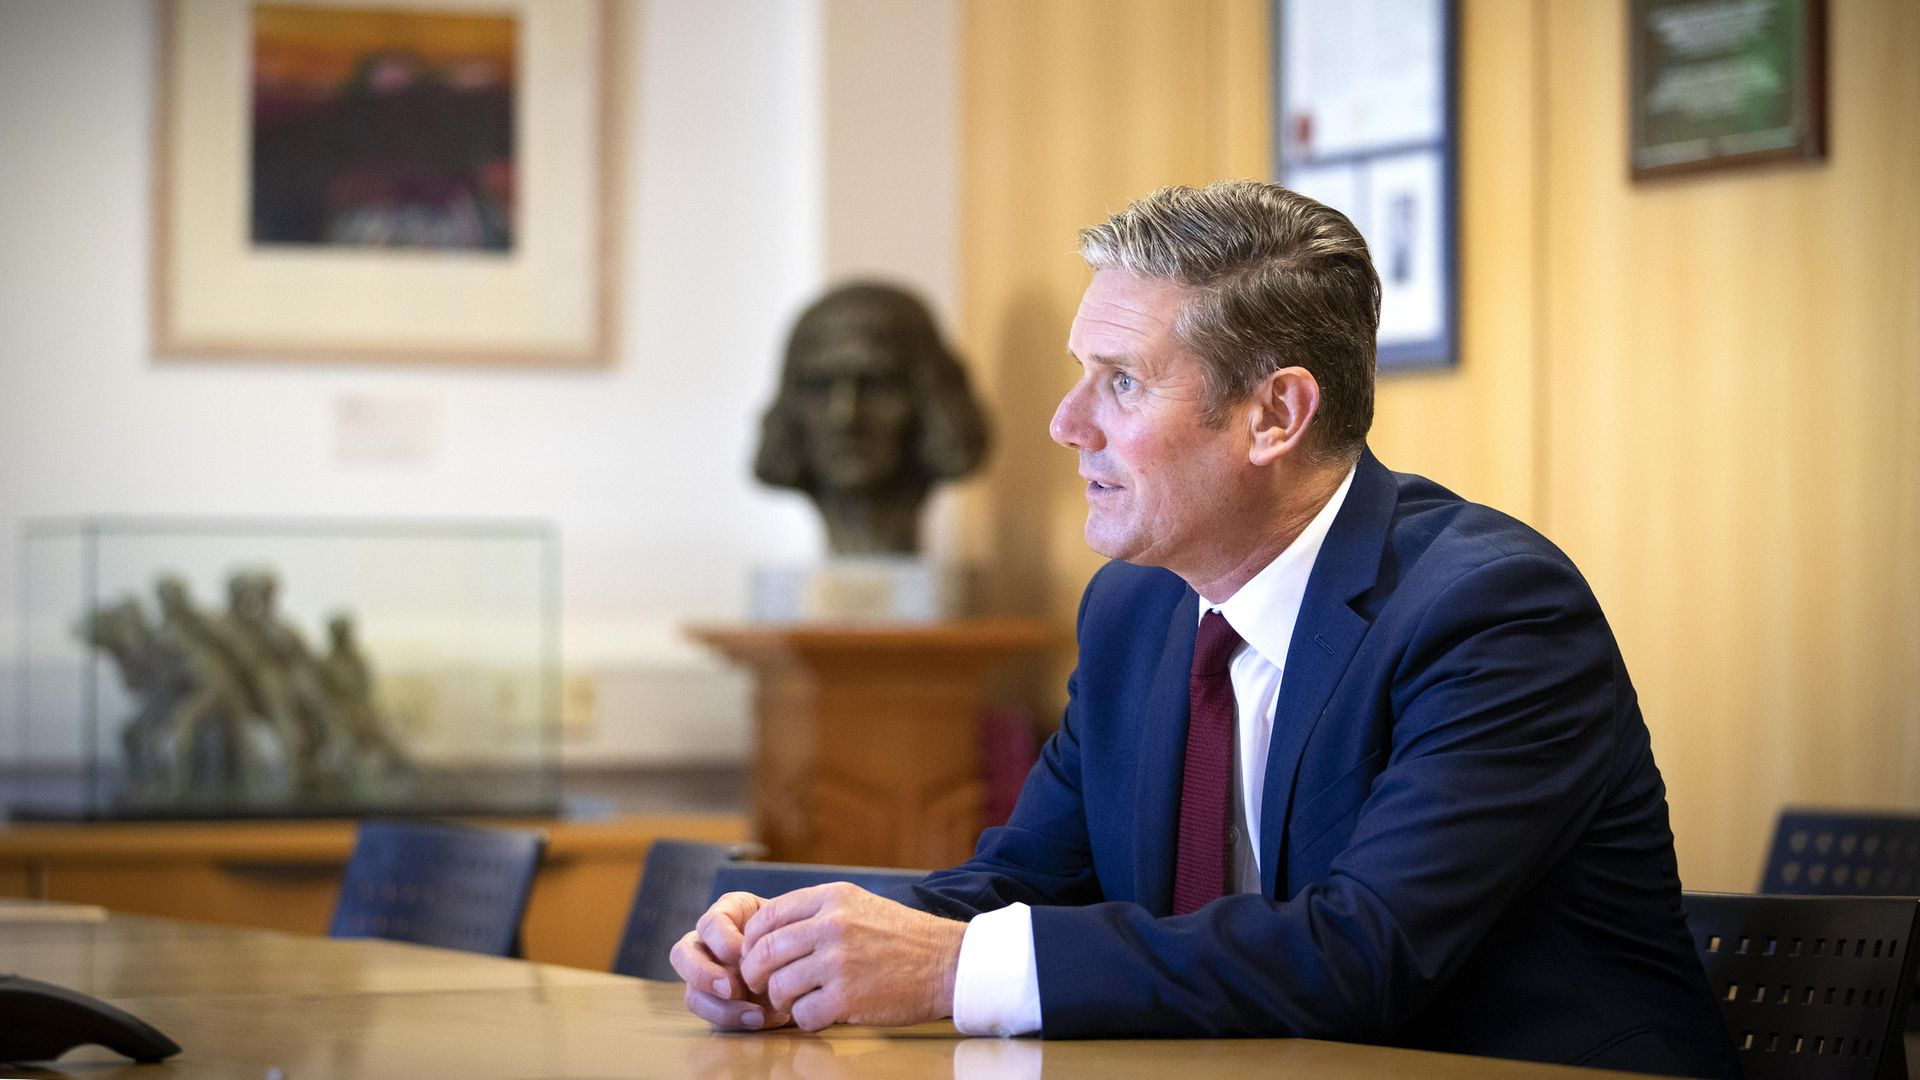 Labour leader Sir Keir Starmer during a visit to the University of Edinburgh School of Medicine. - Credit: PA